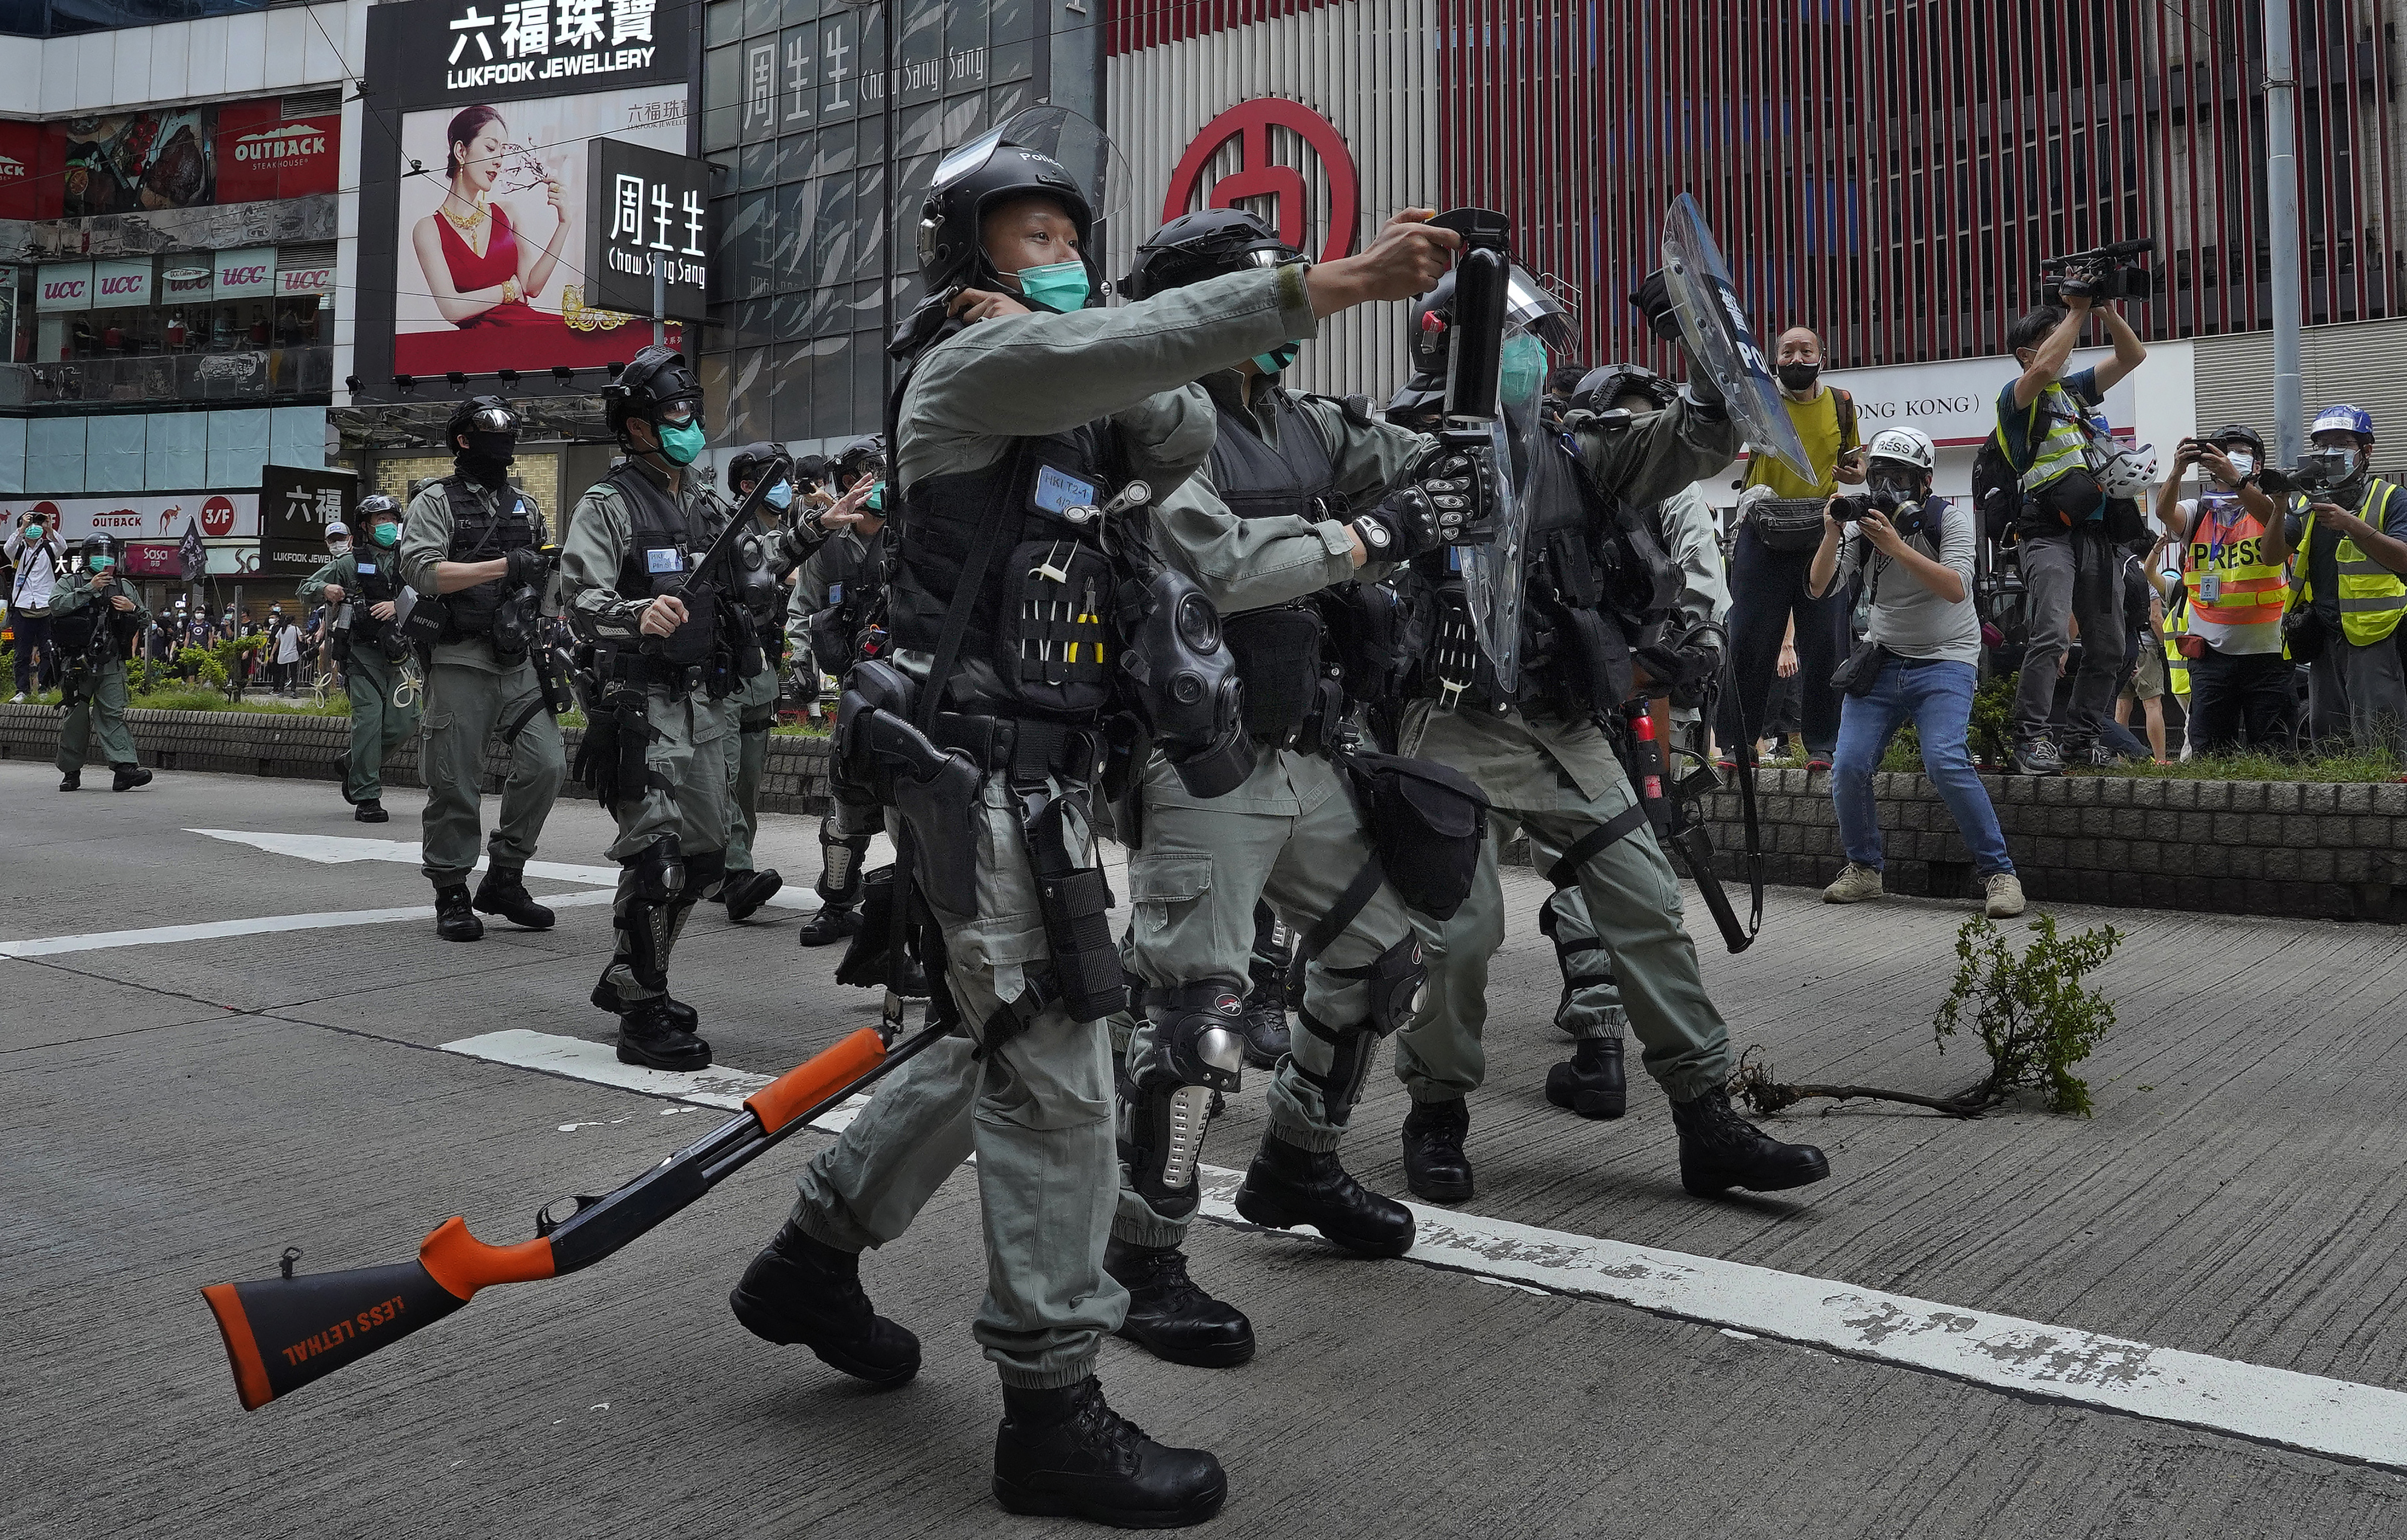 Riot police use pepper spray on protesters as one drops his gun during a demonstration in Hong Kong